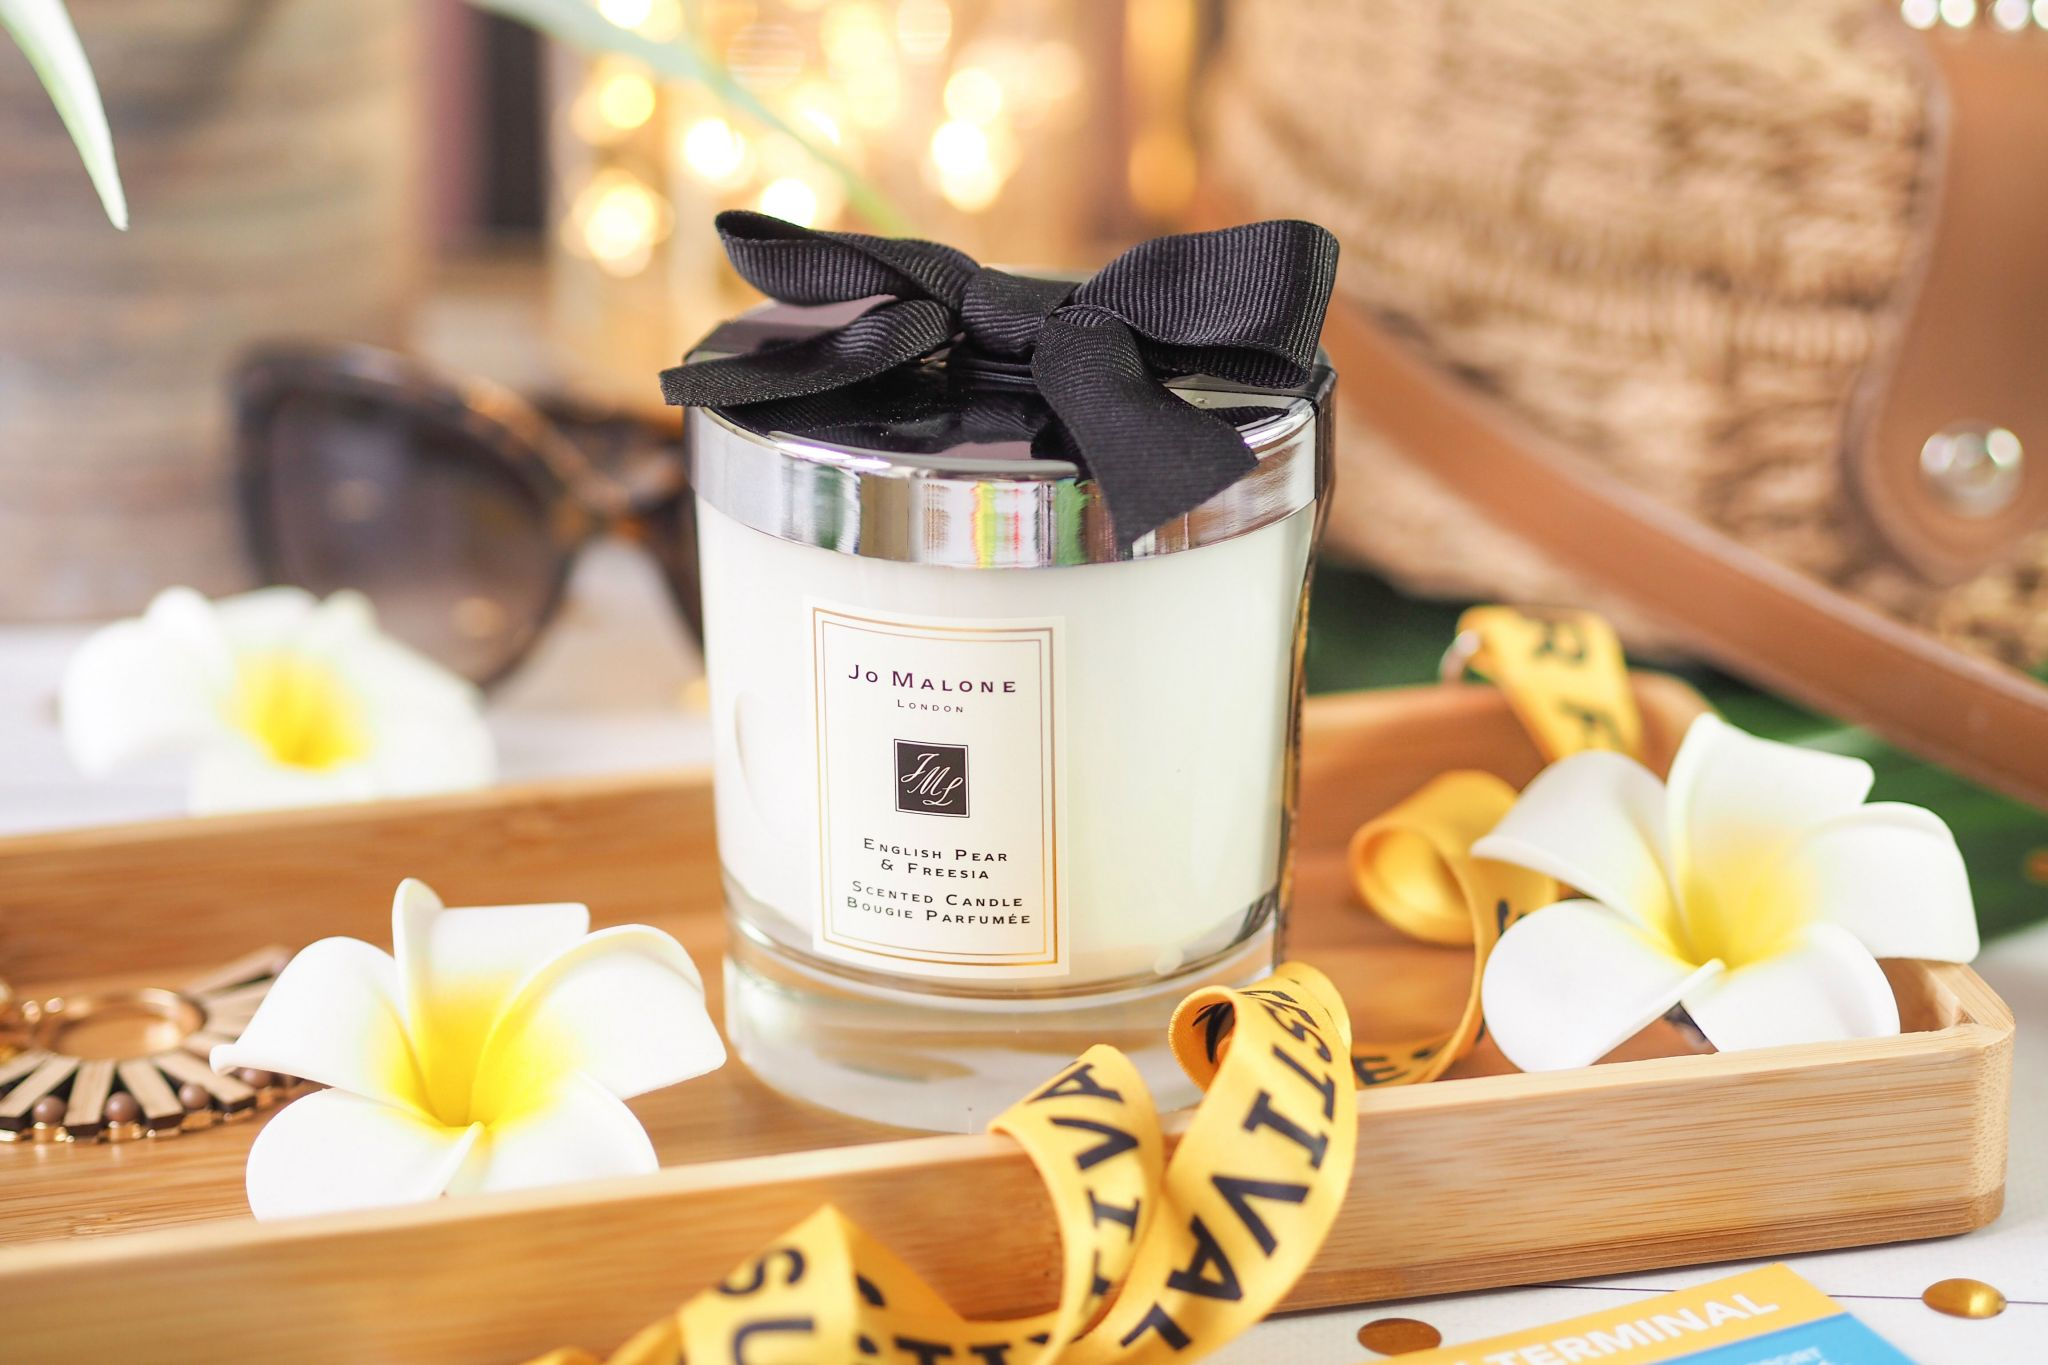 Jo Malone English Pear & Freesia Candle